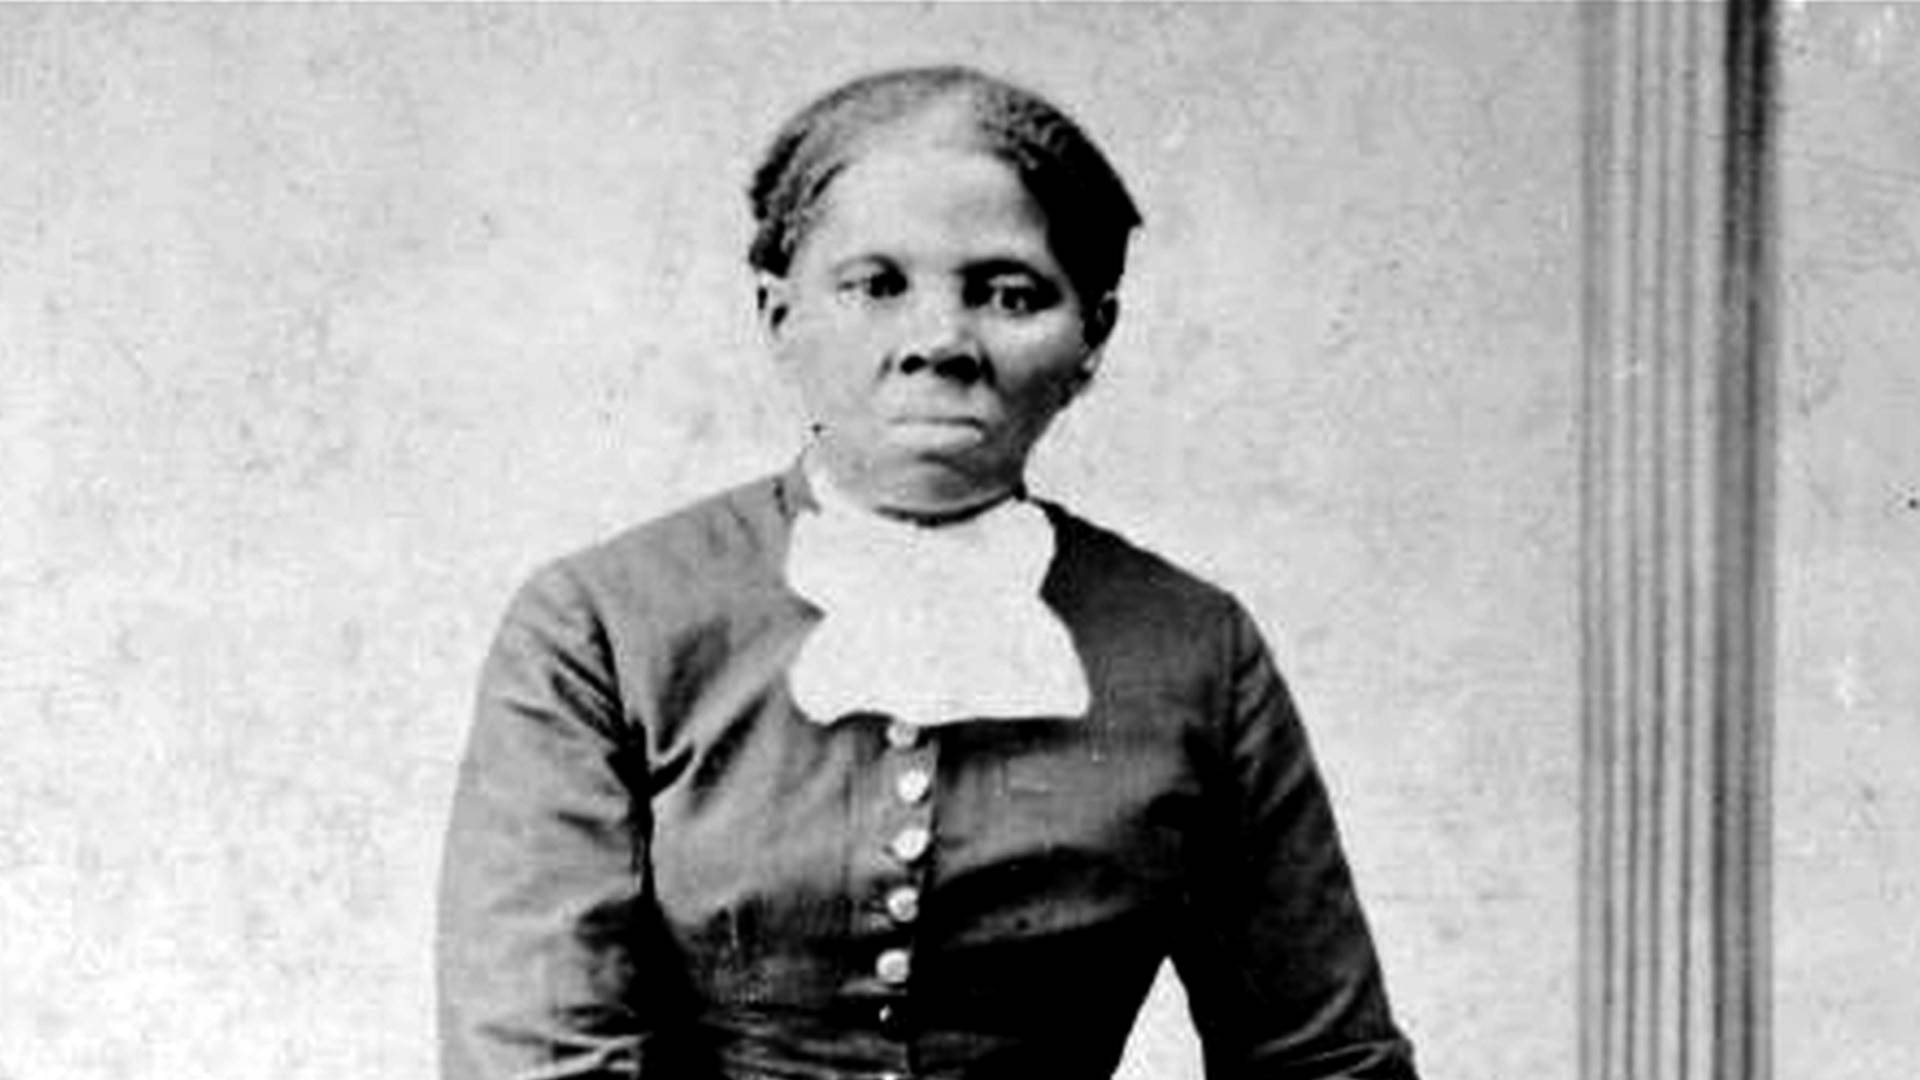 honor or insult a debate on the significance of harriet tubman a debate on the significance of harriet tubman on the new 20 bill democracy now